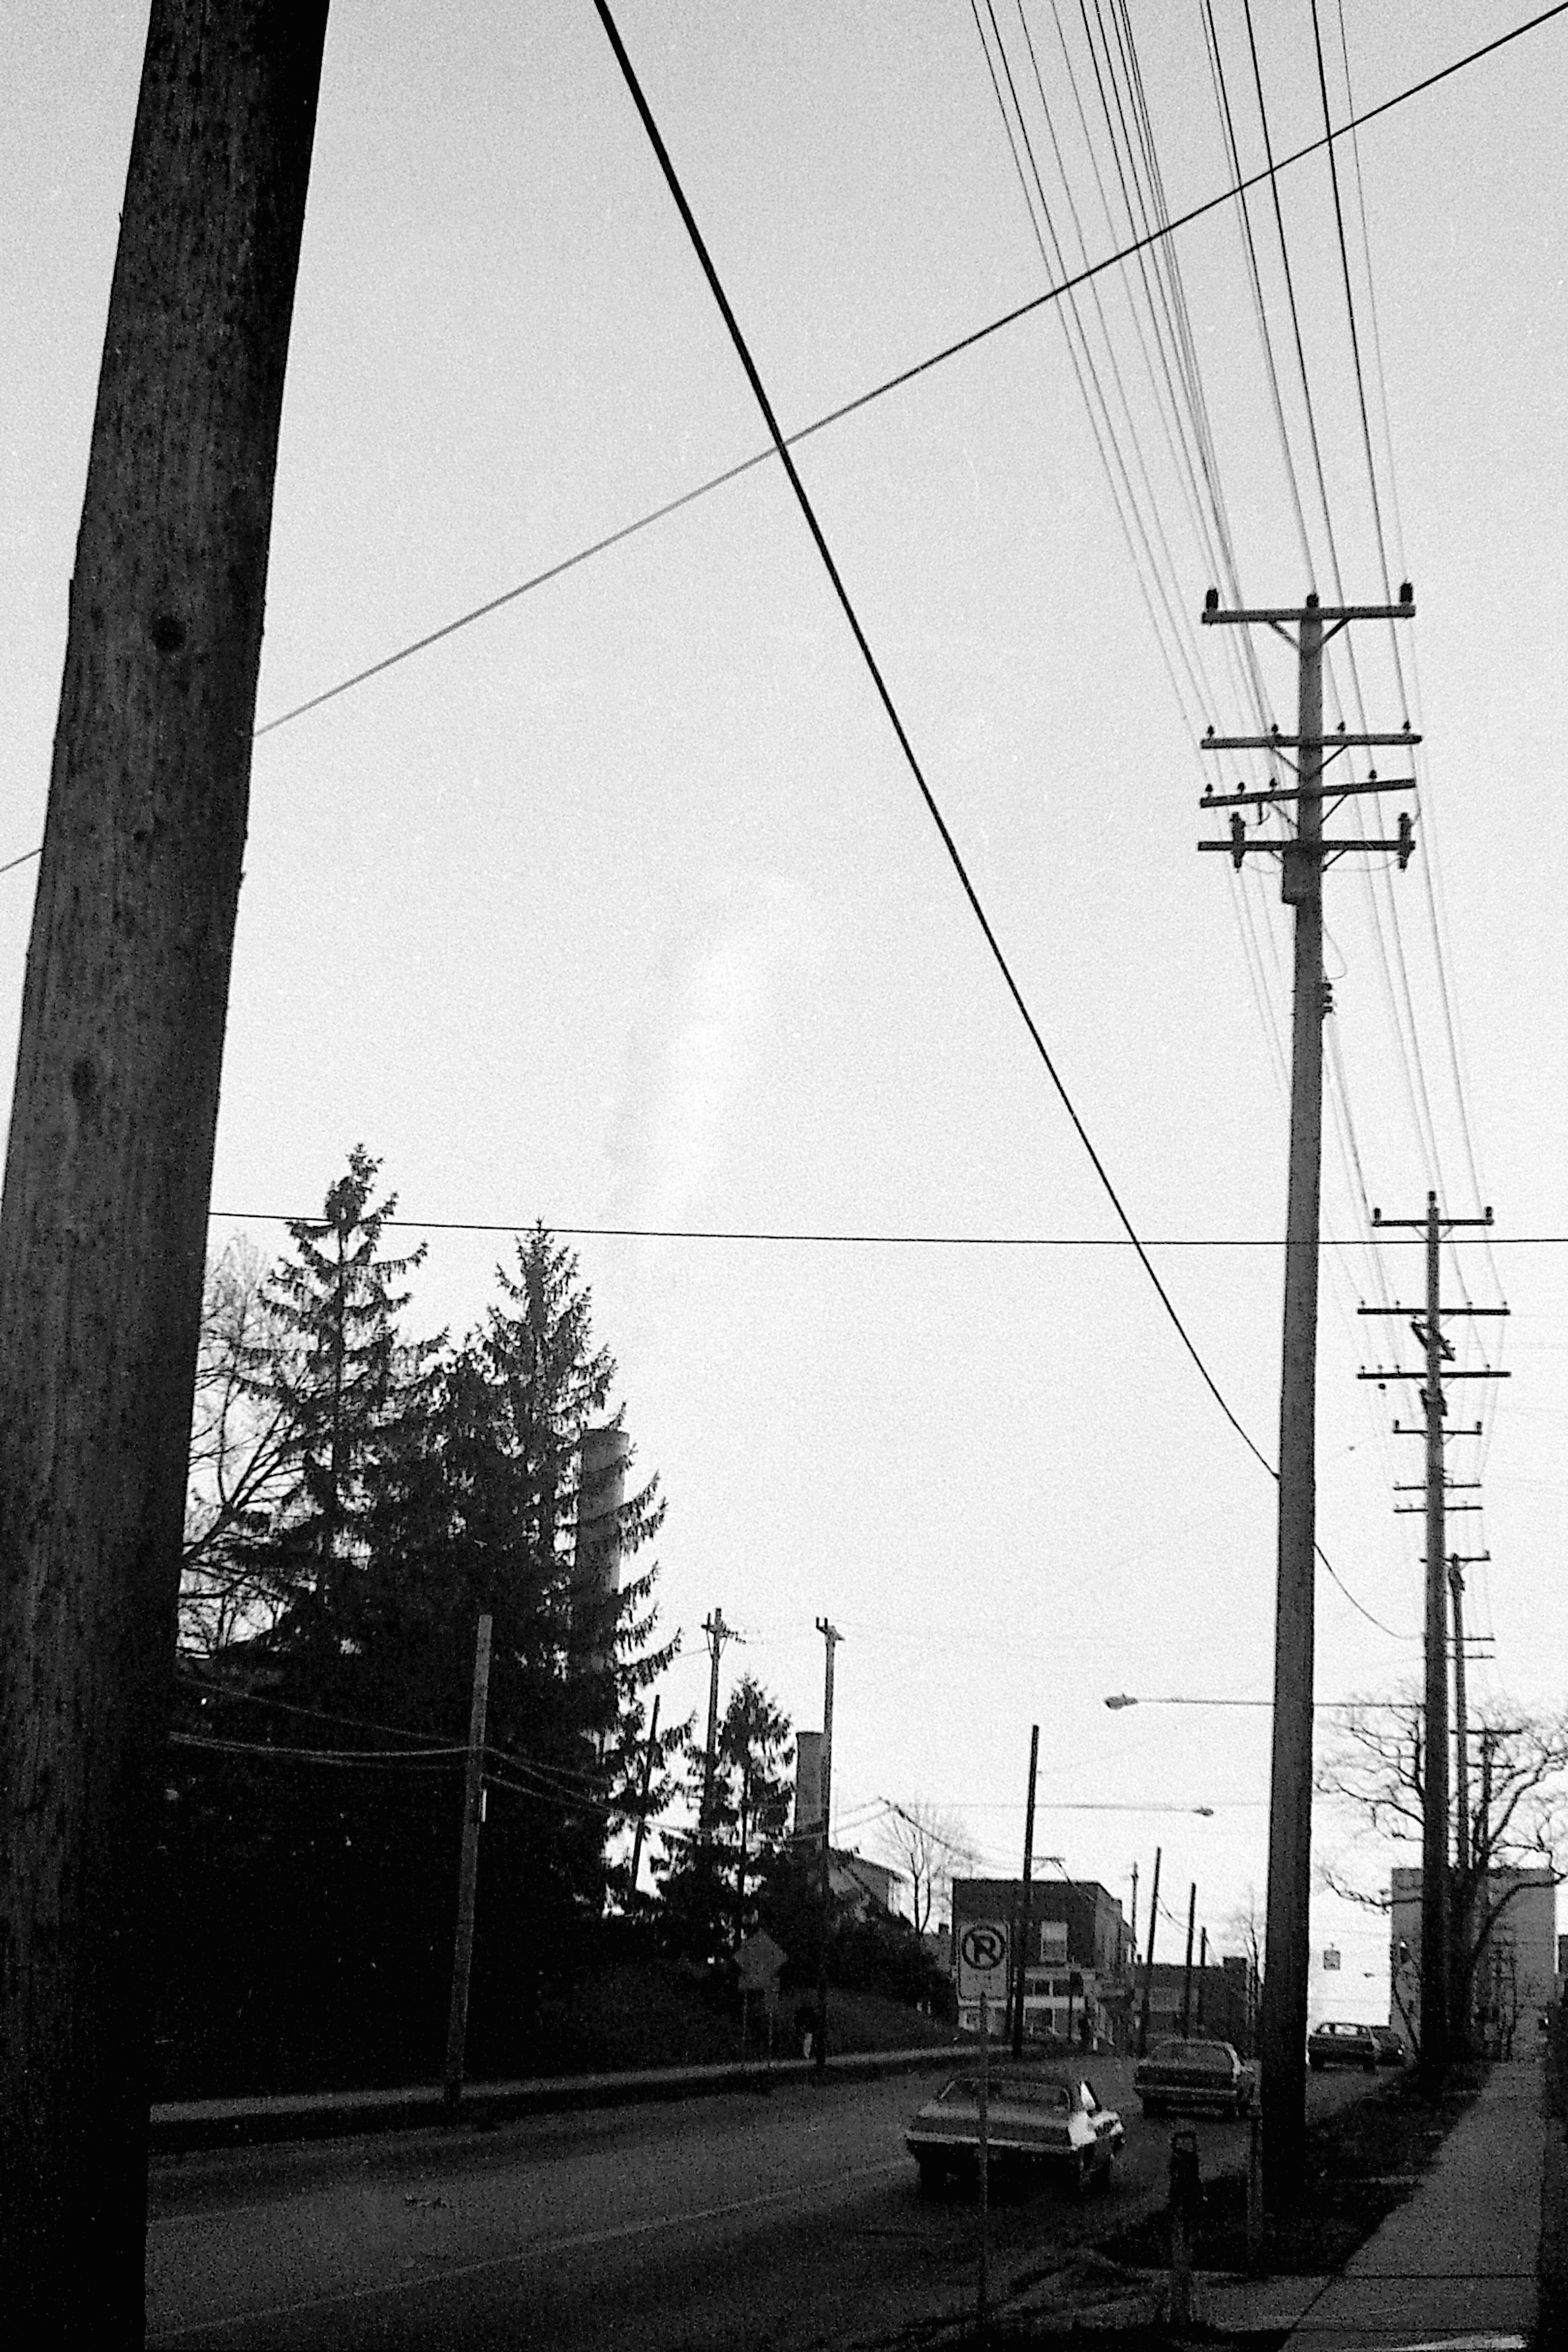 Power Stacks from Glen Ave, Looking South, with Angelo's Restaurant, 1978 image